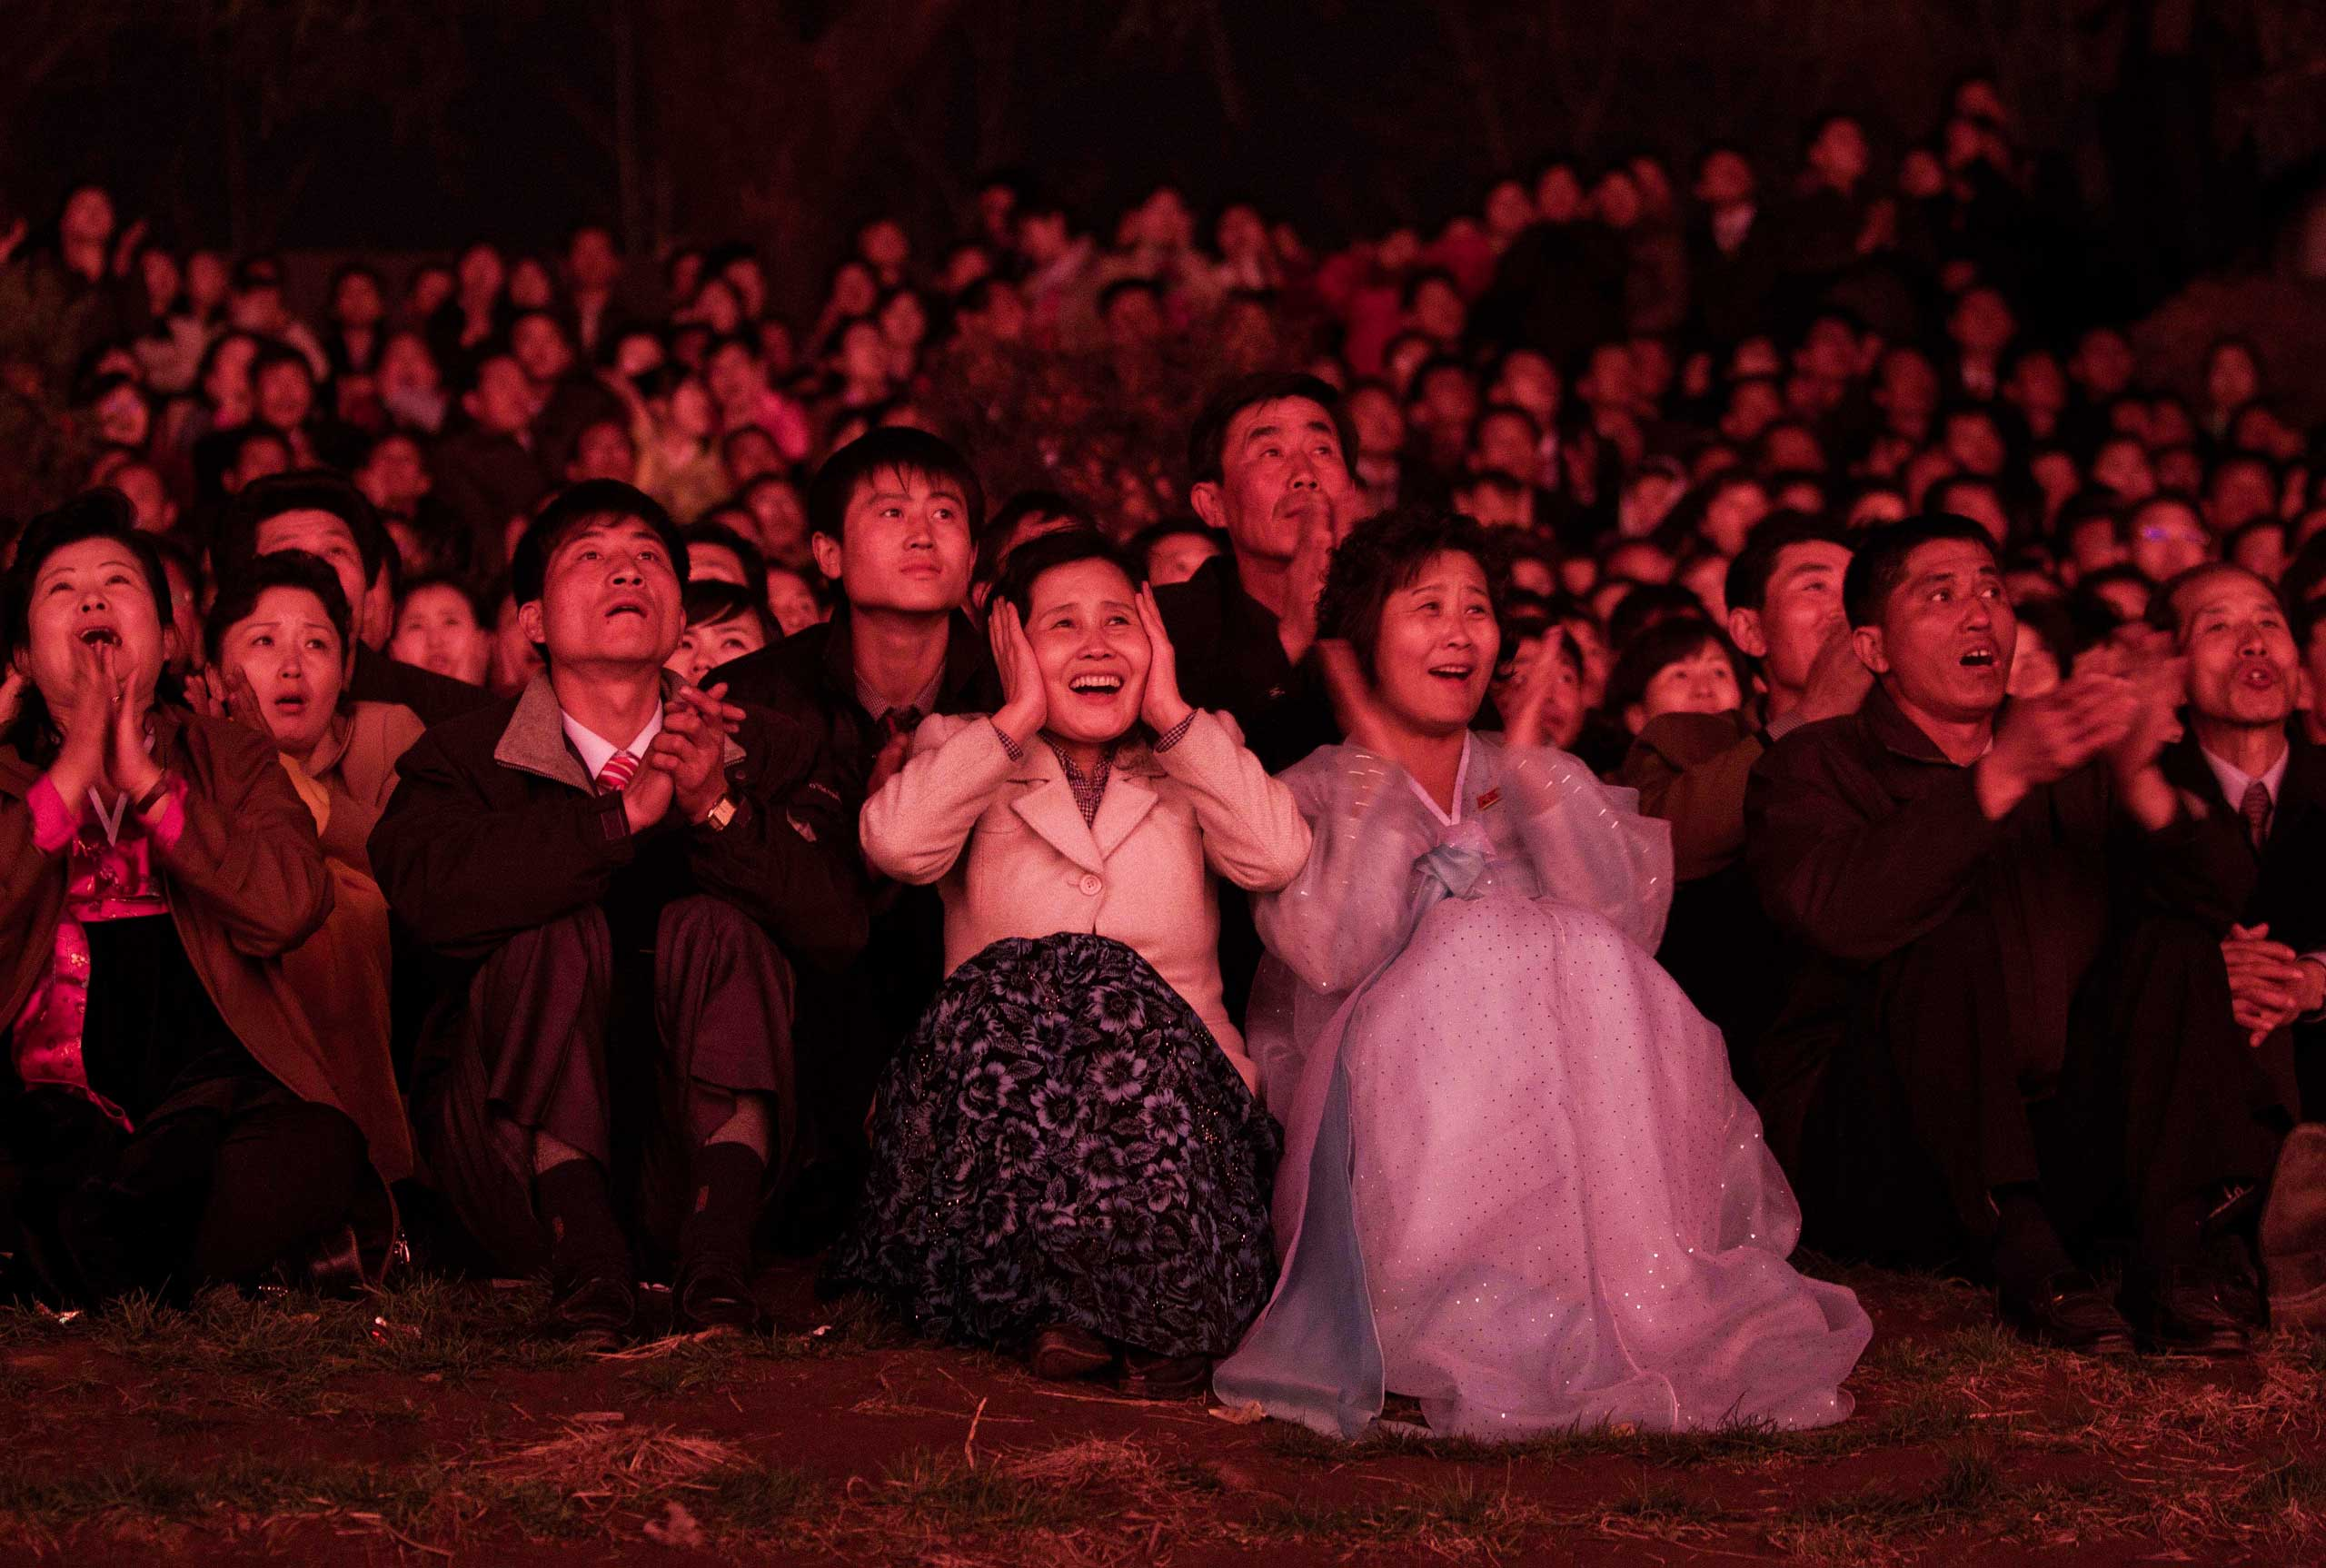 April 15, 2012. North Koreans, lit with red light, look on with delight as they watch a fireworks display along the Taedong River in Pyongyang to celebrate 100 years since the birth of the late North Korean founder Kim Il-Sung.